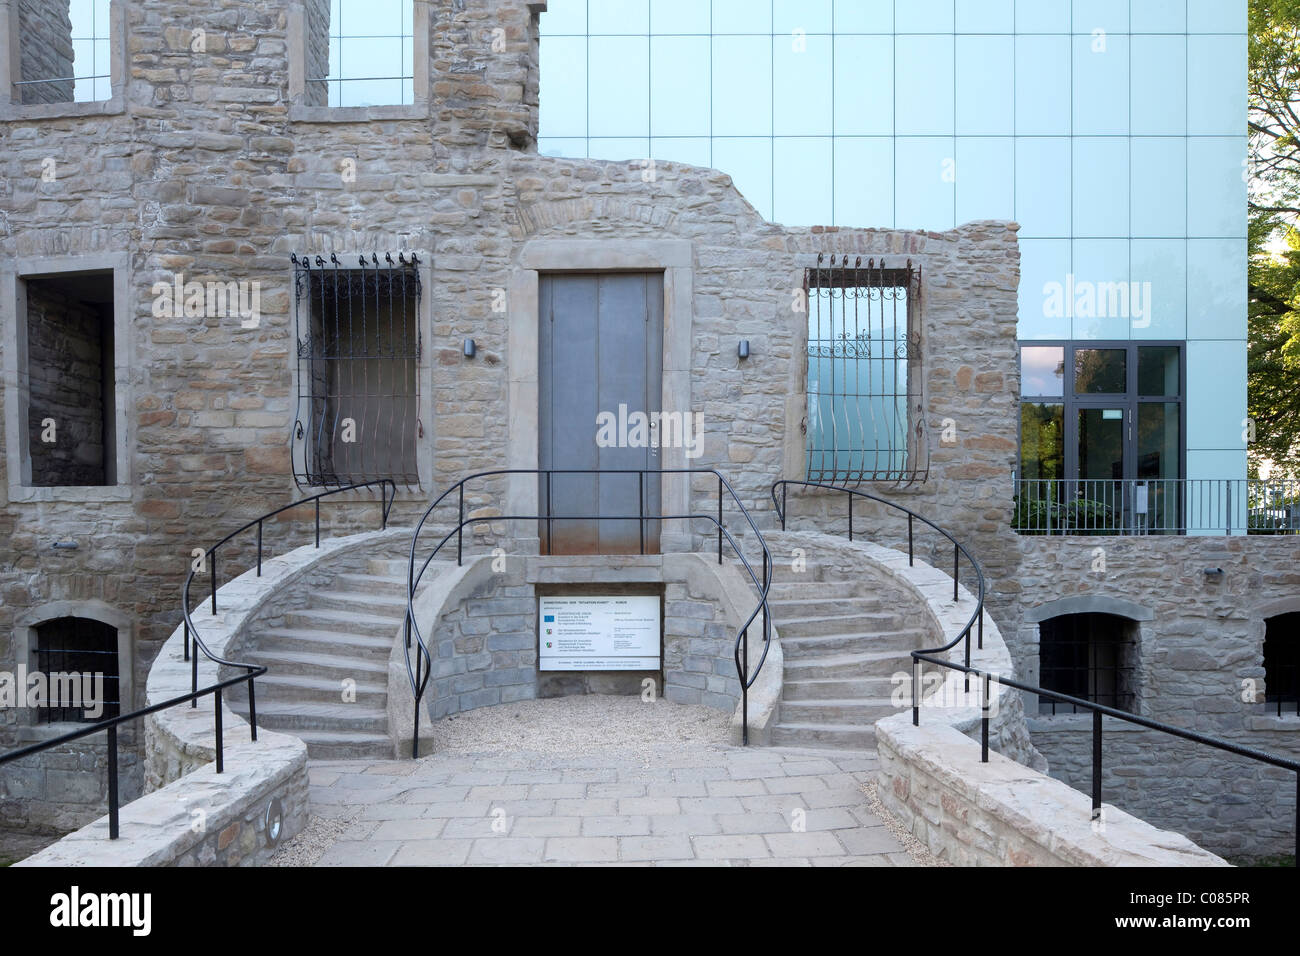 Haus Weitmar and new museum building, Situation Kunst art exhibition, castle ruins, Bochum, Ruhrgebiet region - Stock Image